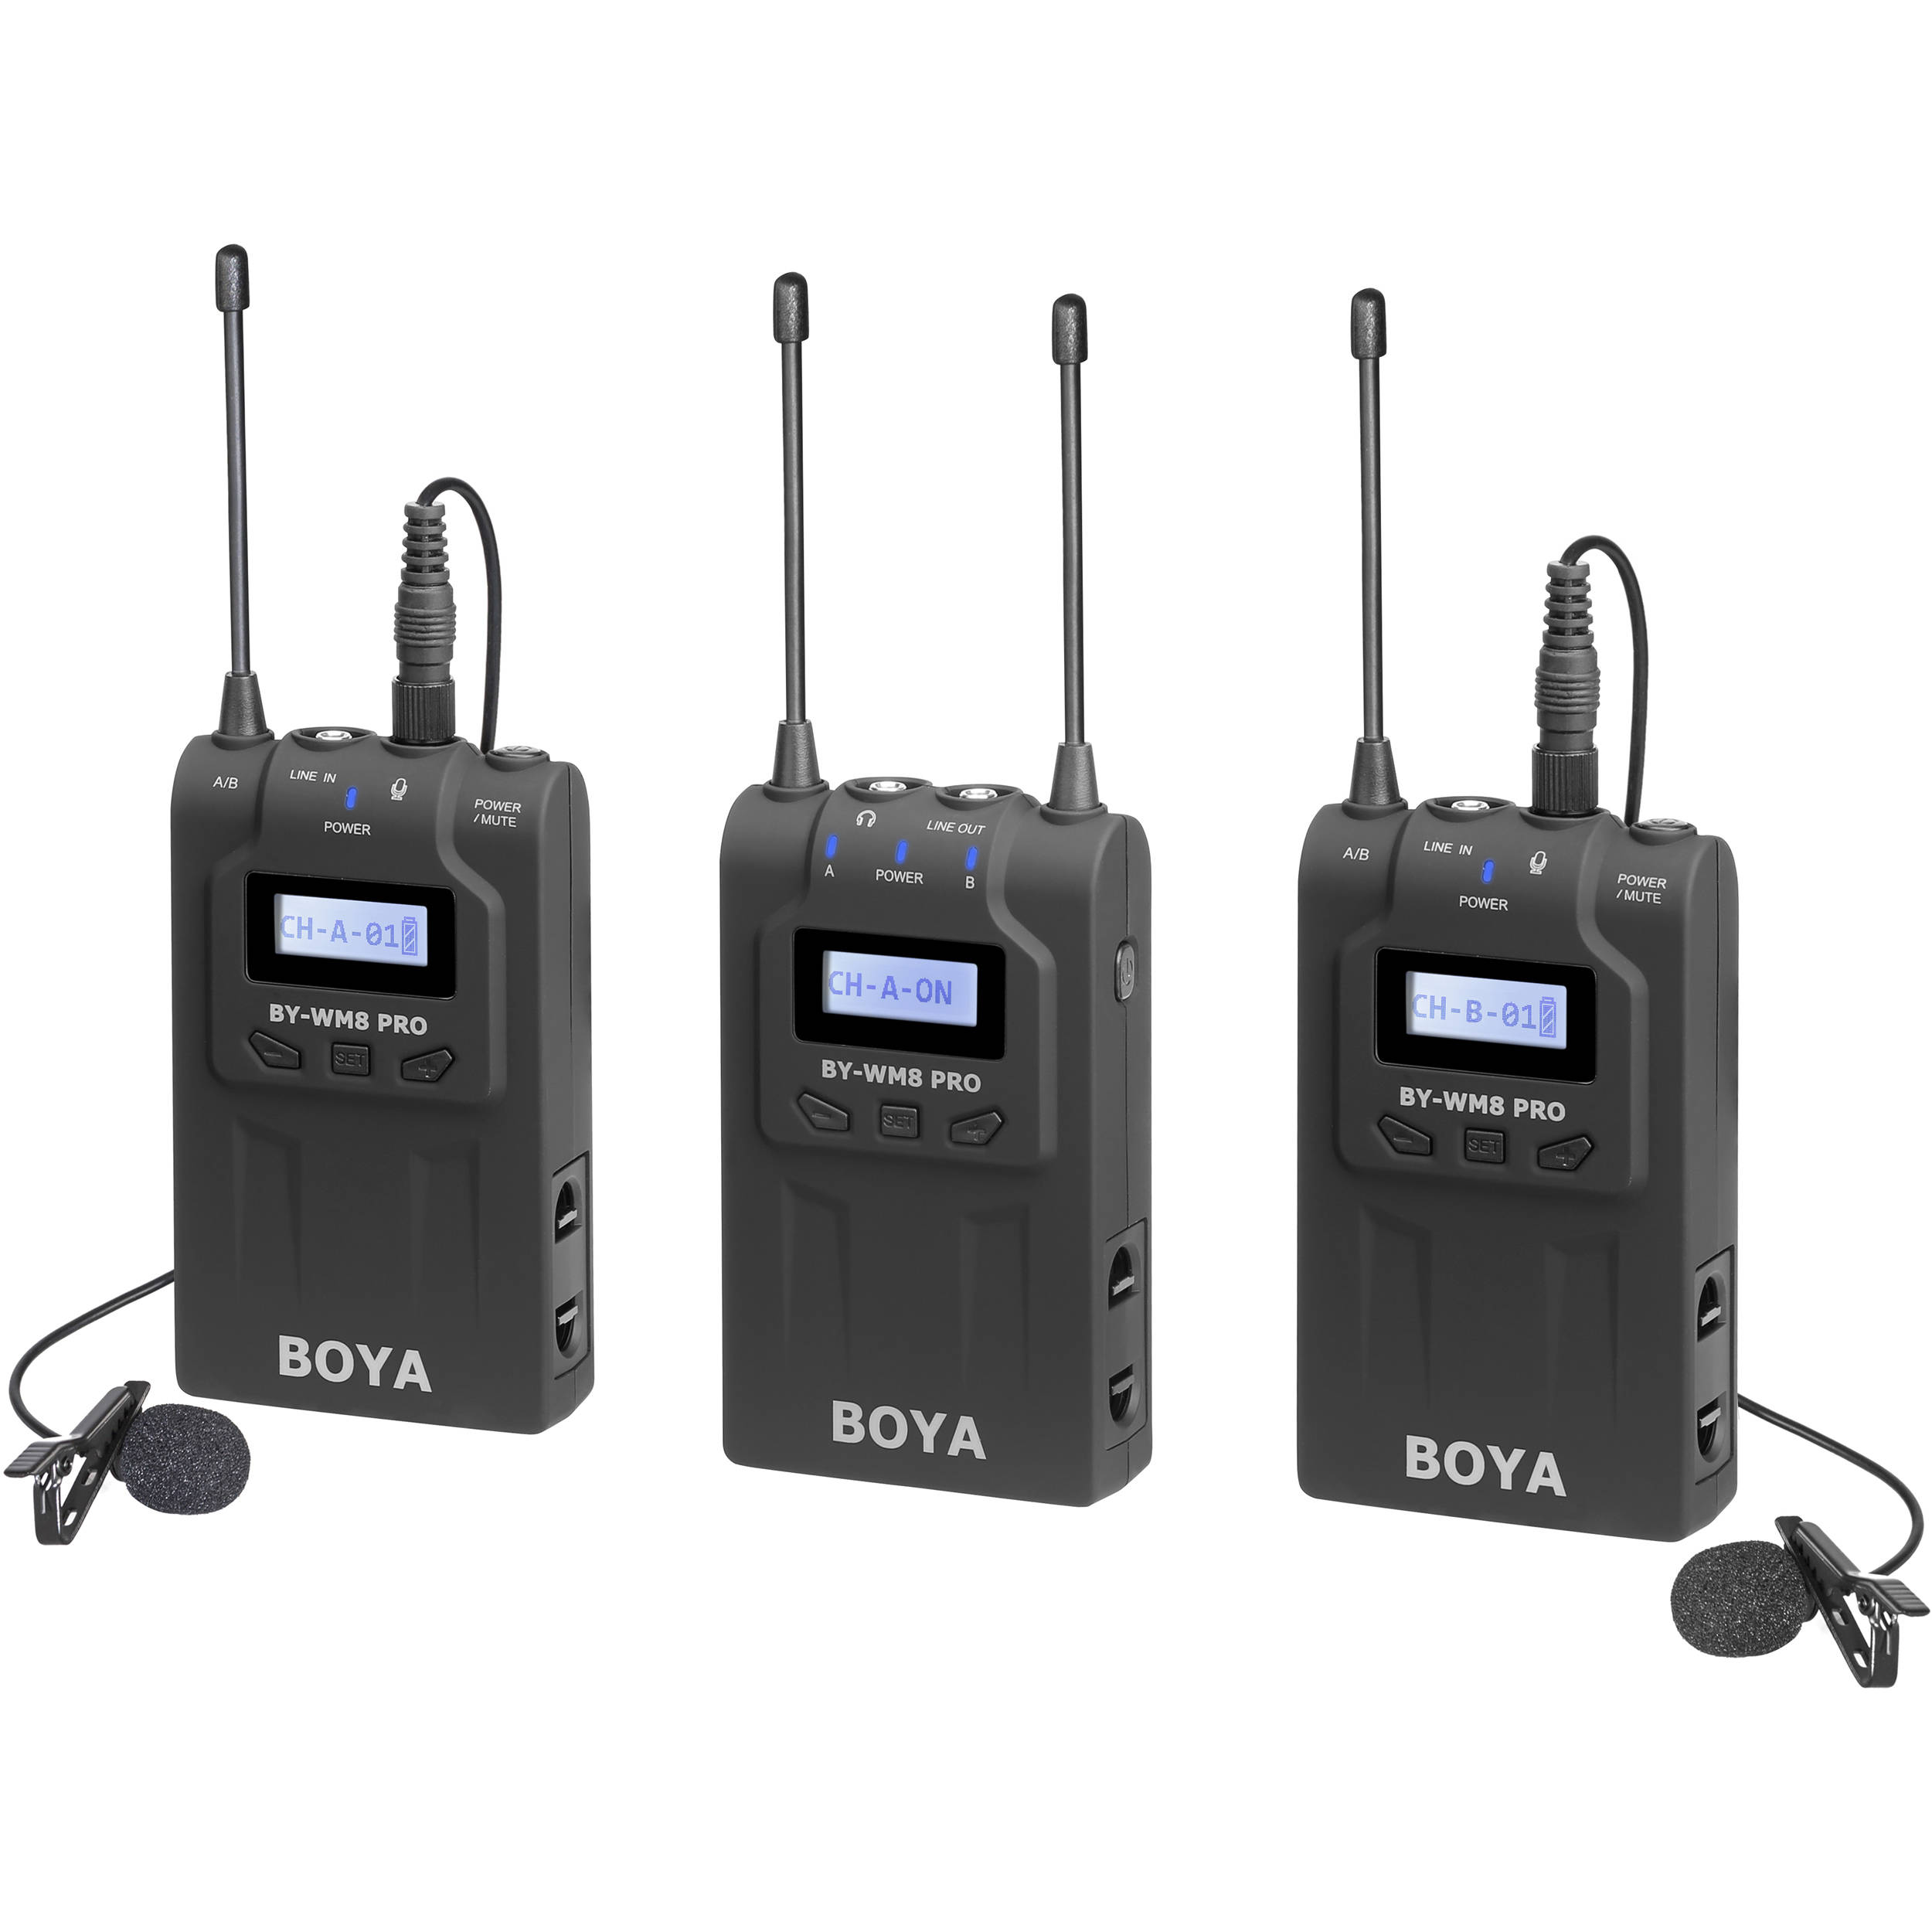 BOYA BY-WM8 Pro-K2 New Wireless Microphone System Black